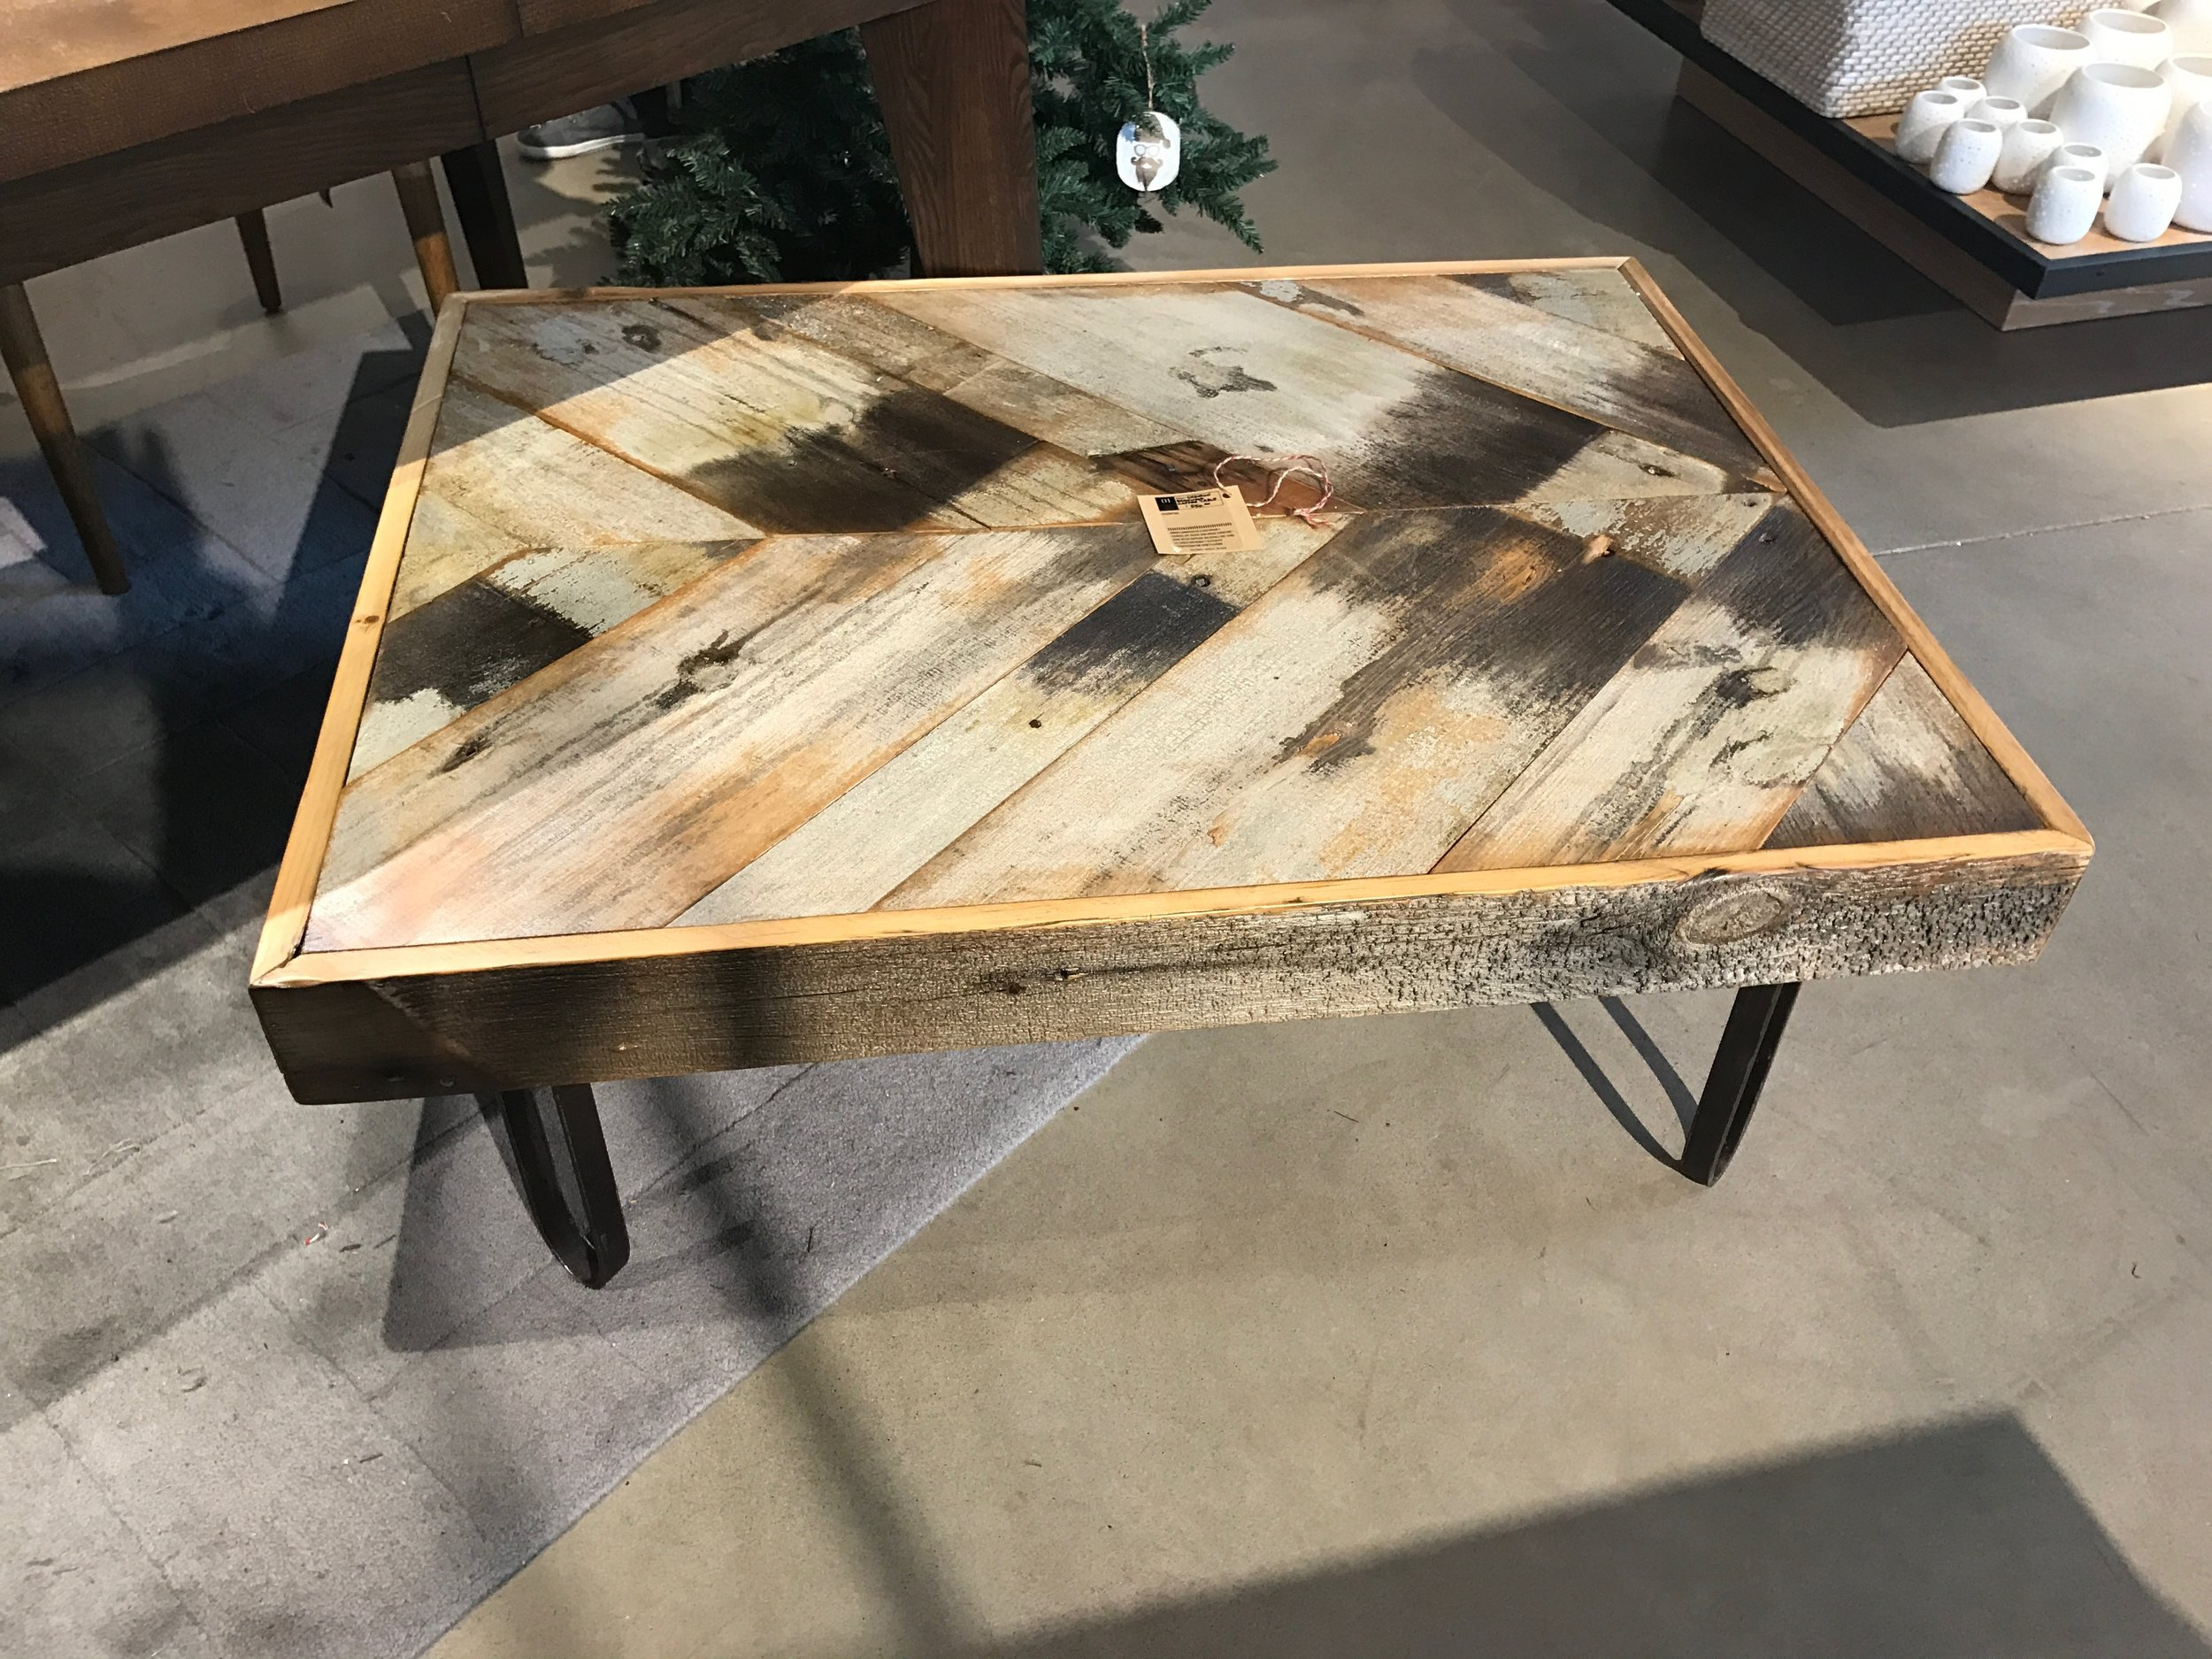 Reclaimed 200 year old barnwood coffee table with flat bar hair pin steel legs